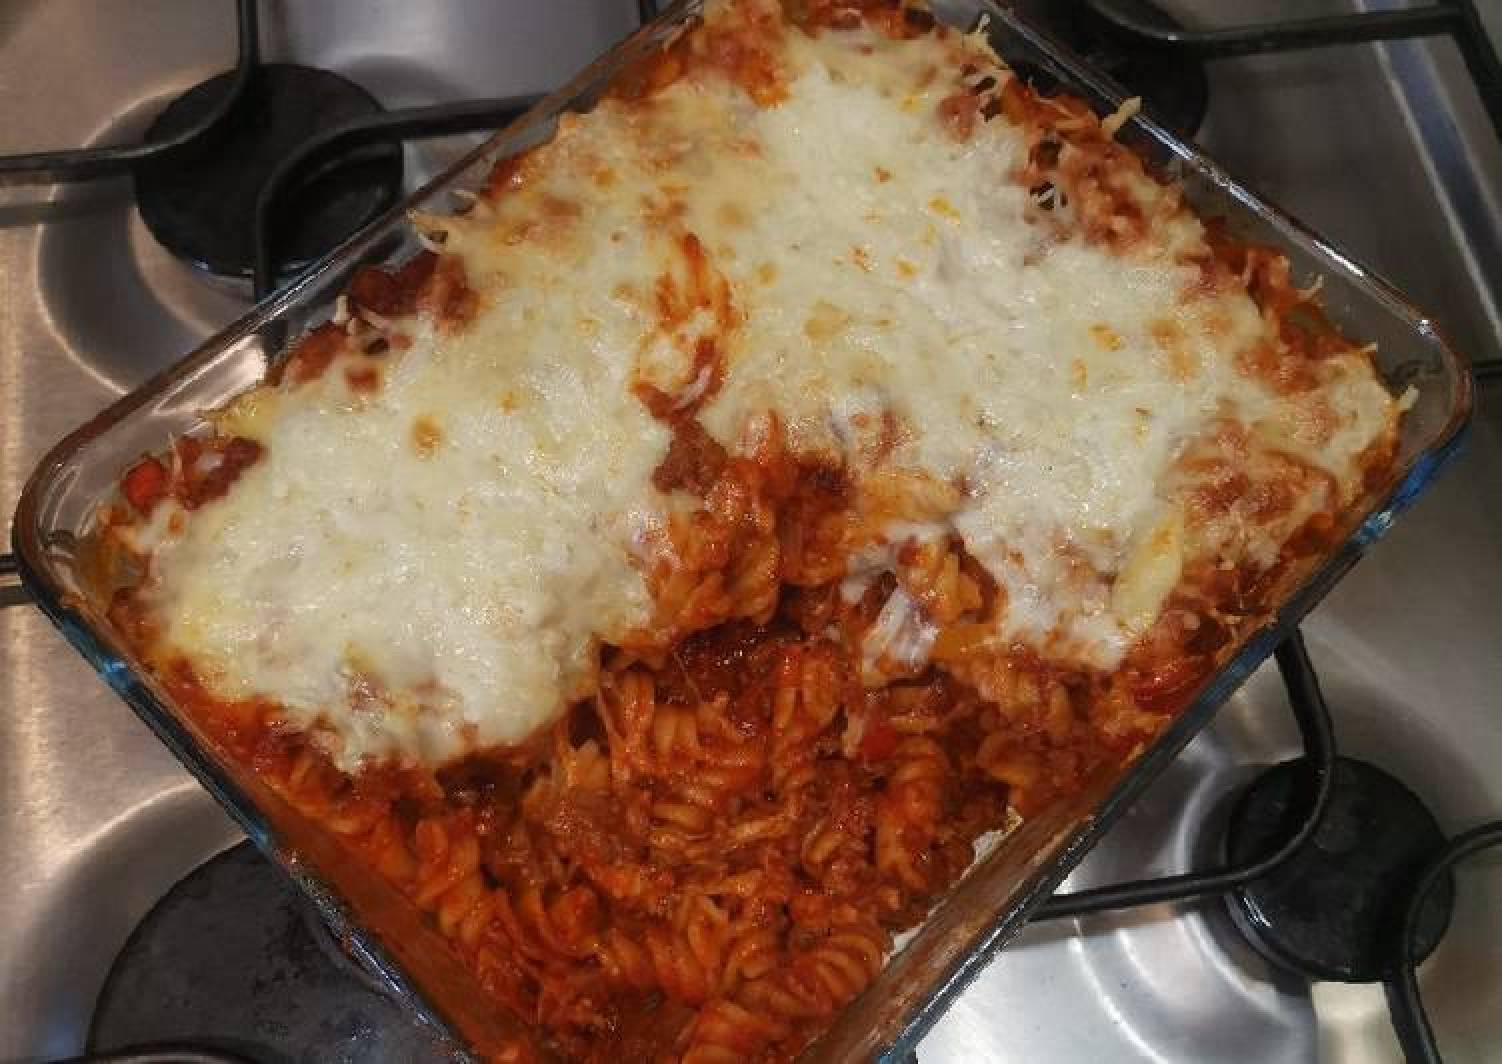 Sloppy Joe BBQ Pasta Bake